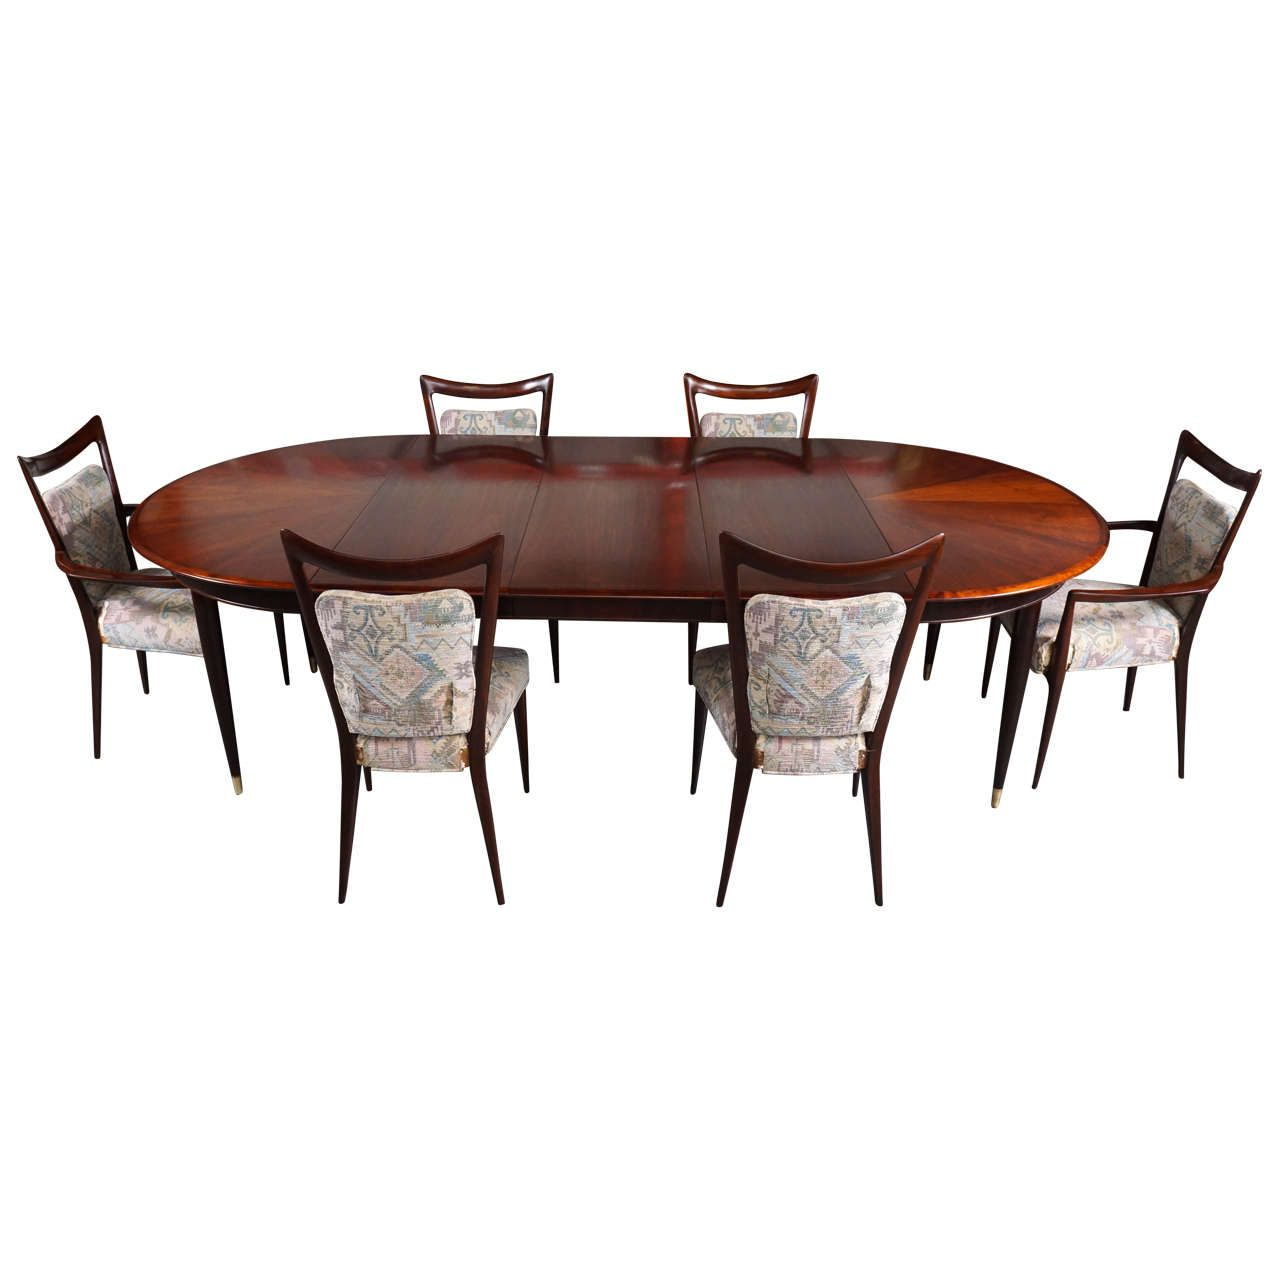 Melchiorre Bega Mahogany Dining Set 10 Chairs Table With Three Leaves Italy Dining Room Table Dining Room Arm Chairs Beautiful Dining Rooms